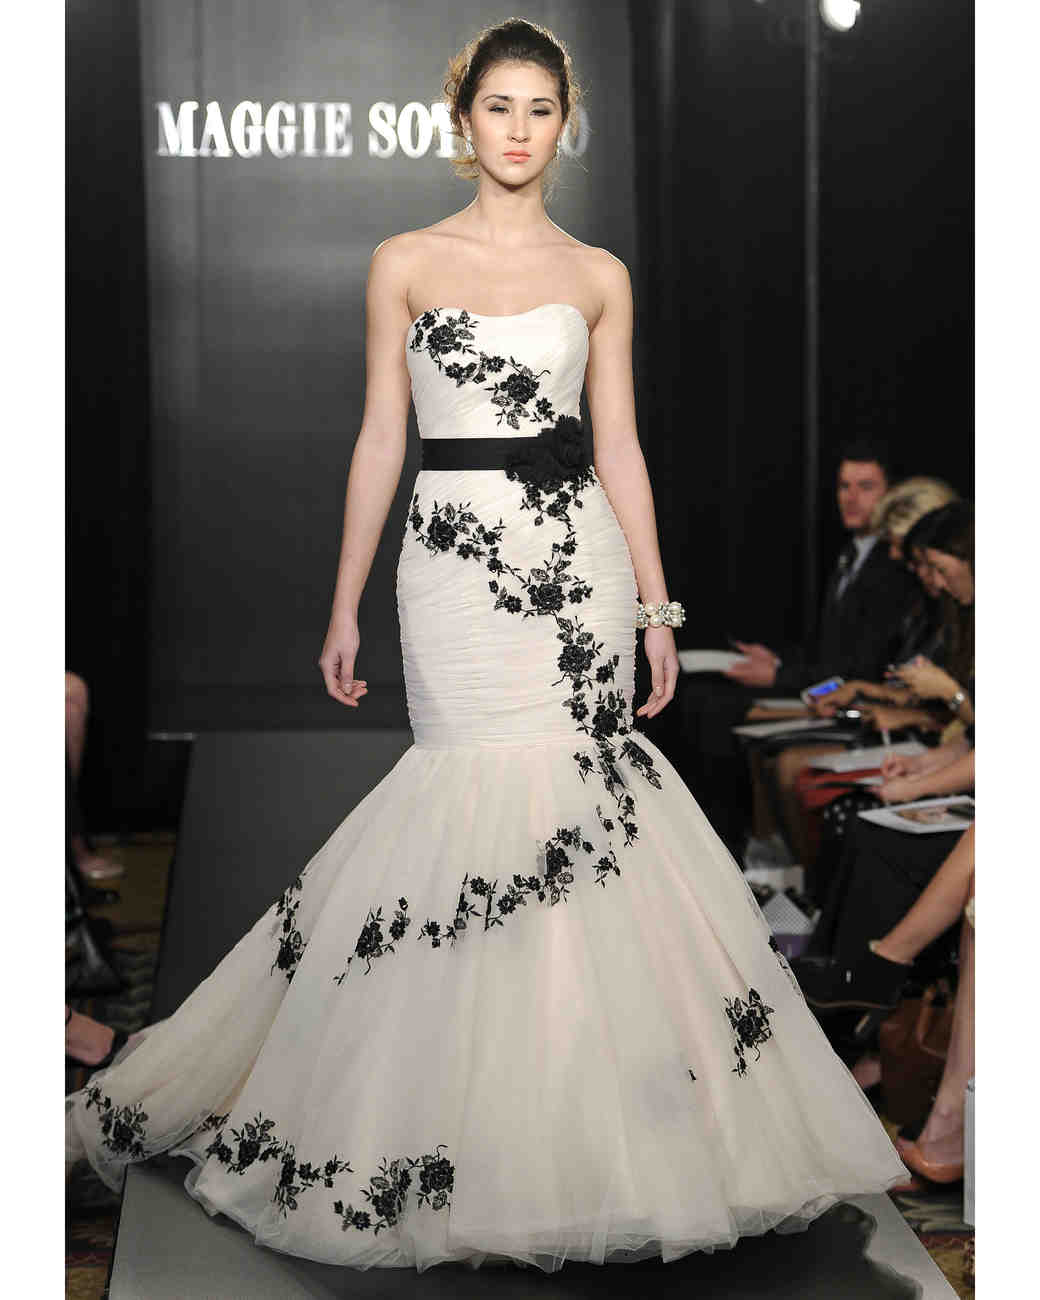 Black And White Wedding Gowns: Black-and-White Wedding Dresses, Spring 2013 Bridal